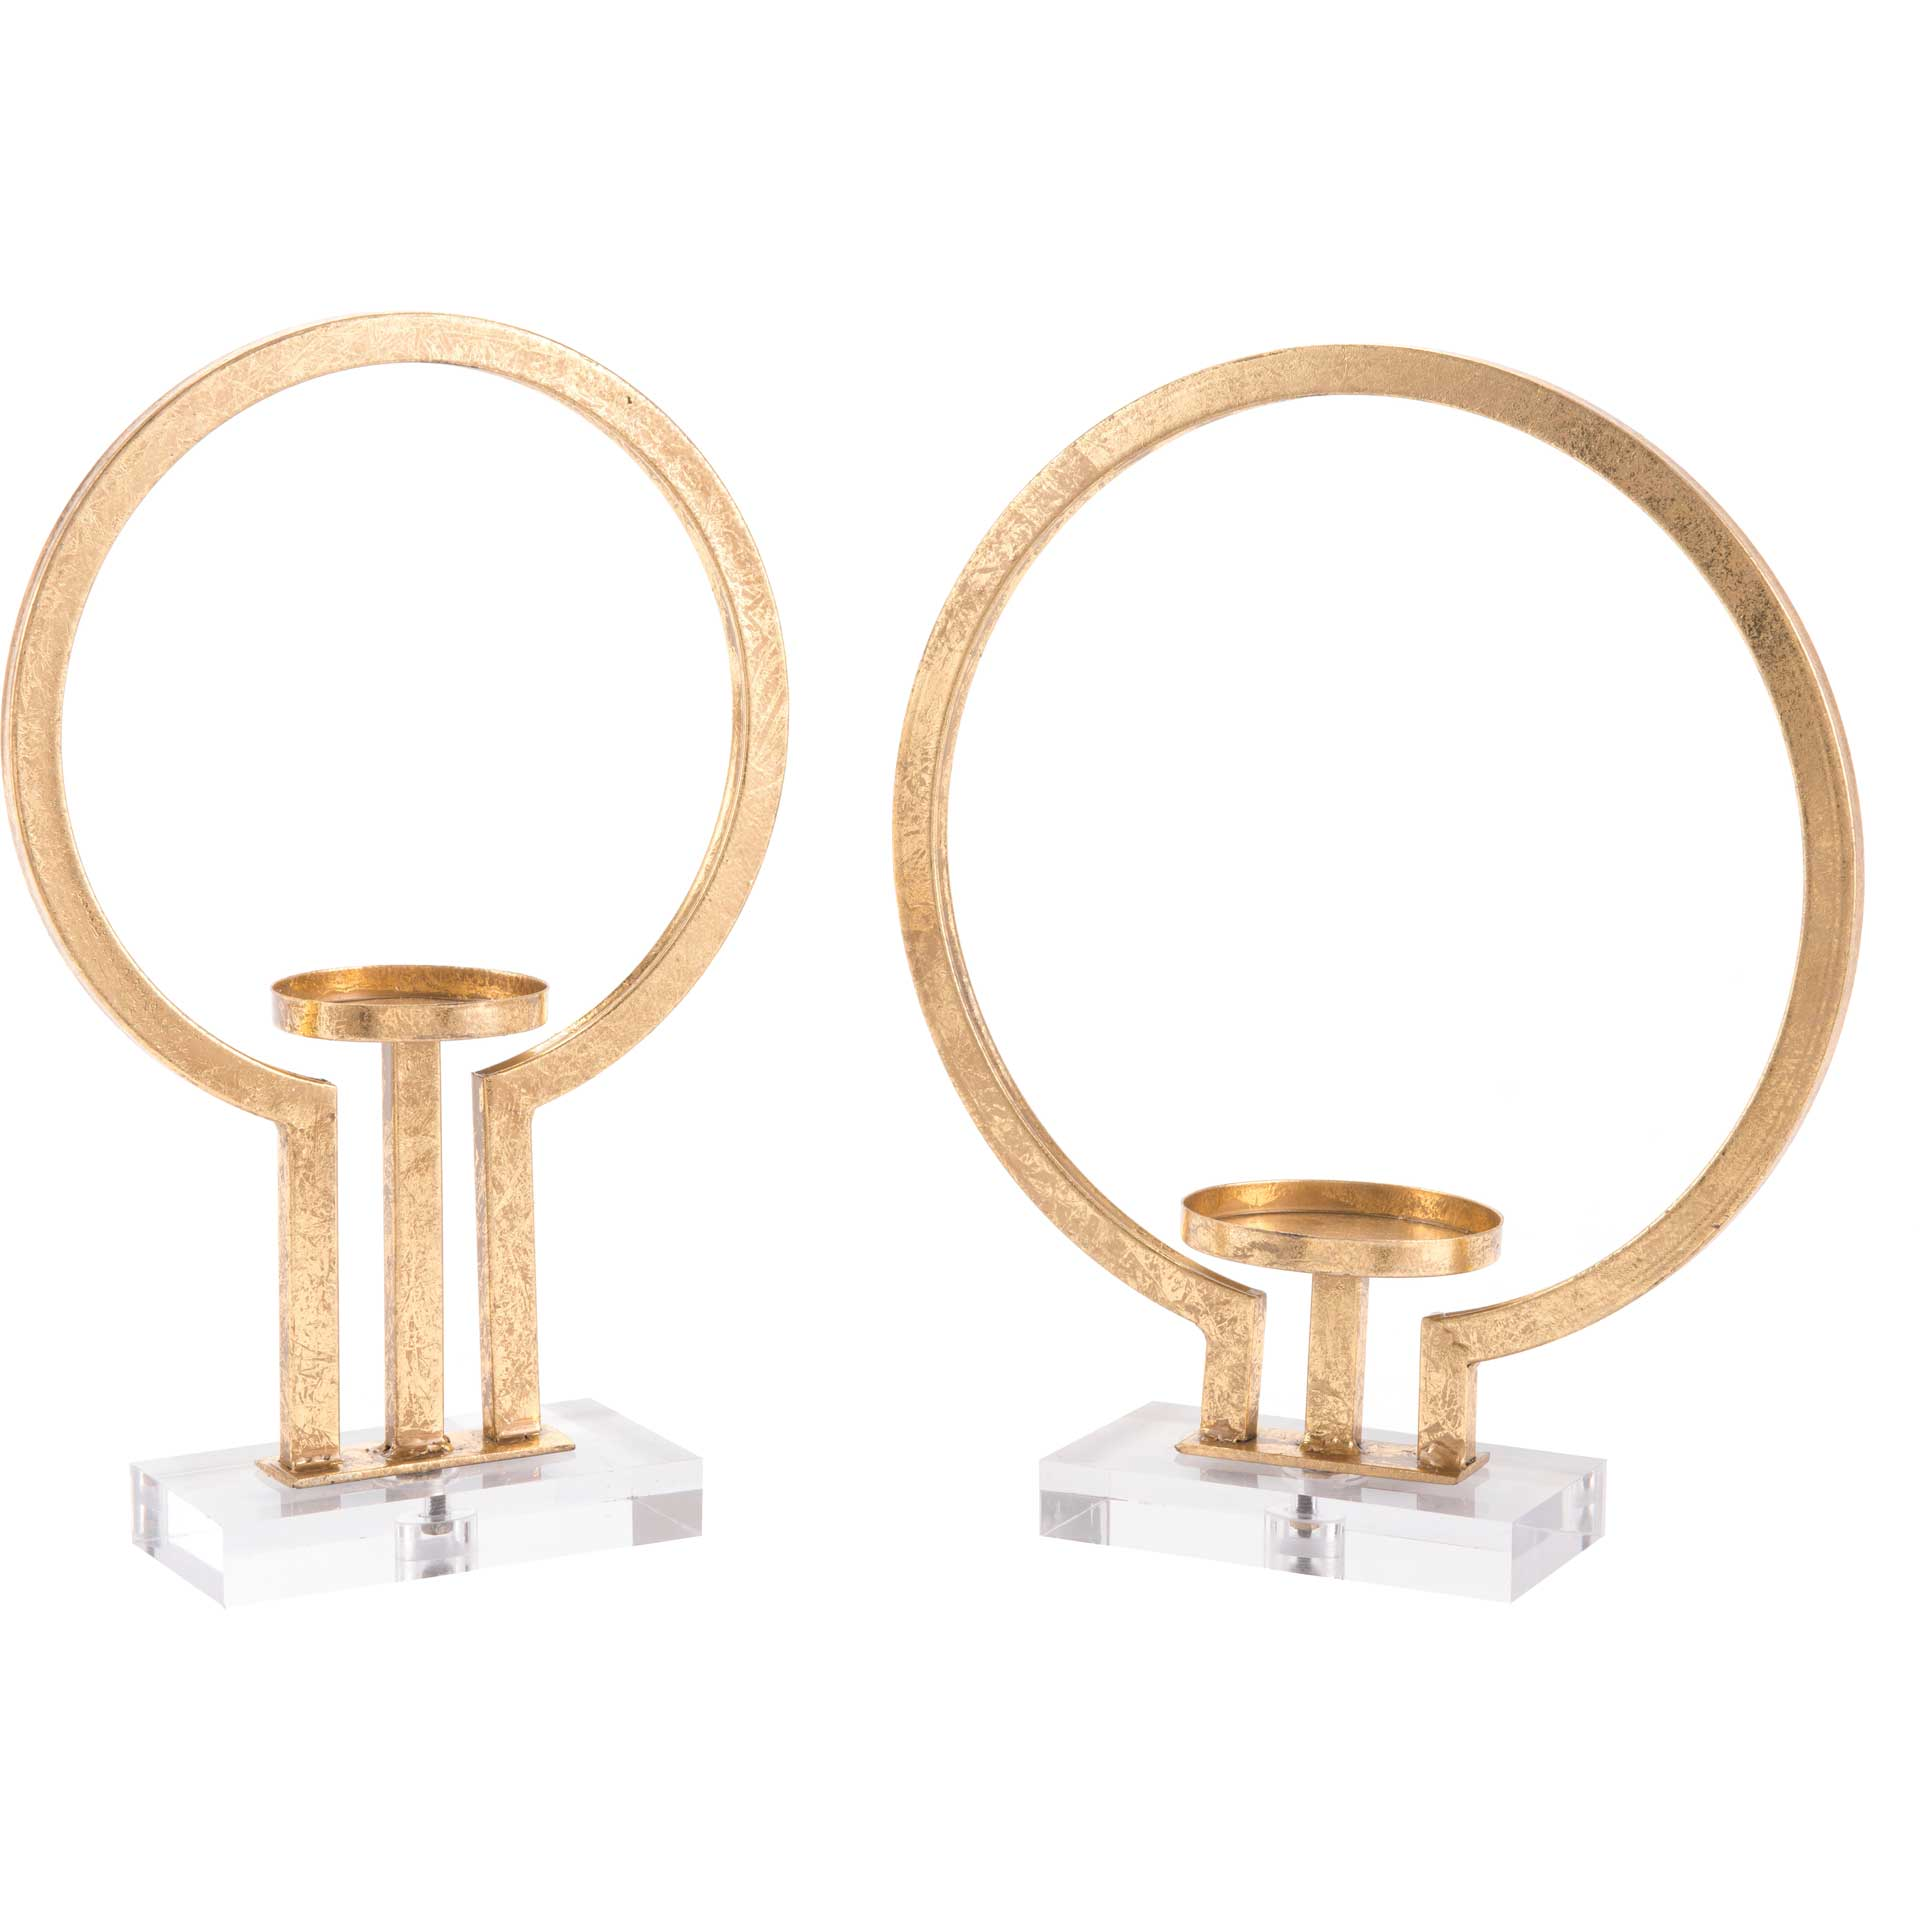 Oly Candle Holders Gold (Set of 2)